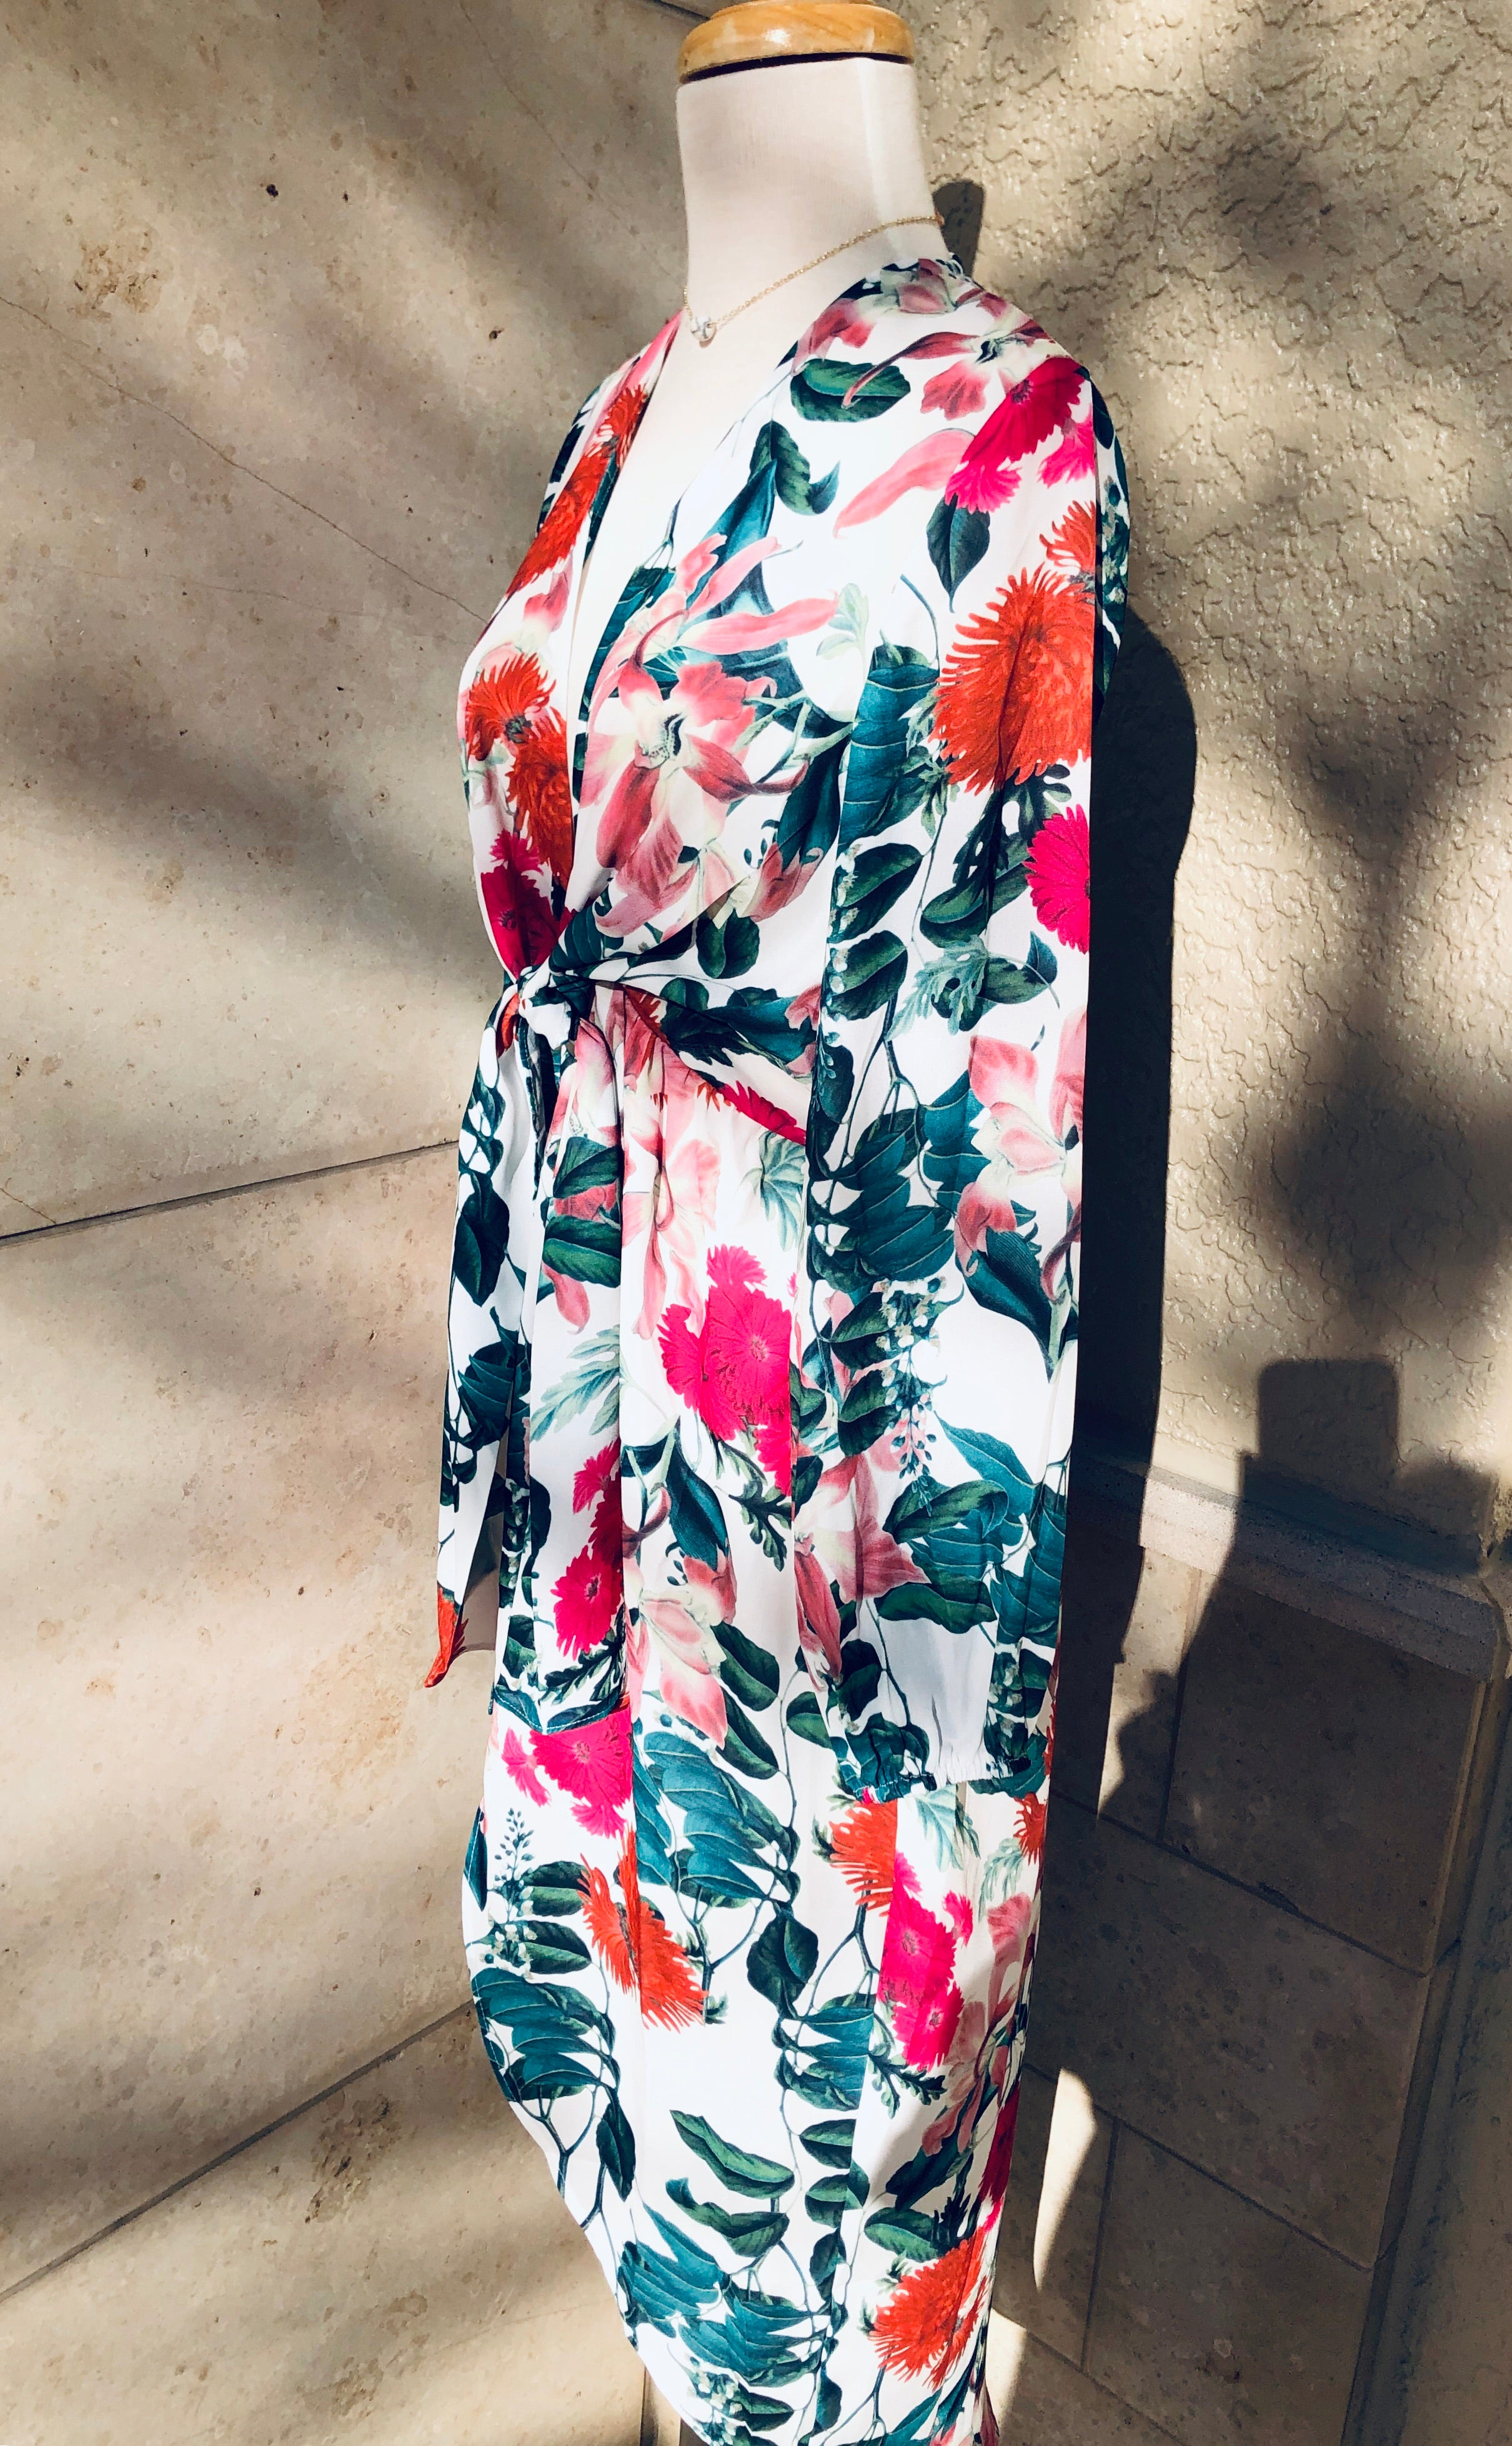 side view of detailing to floral hilow dress